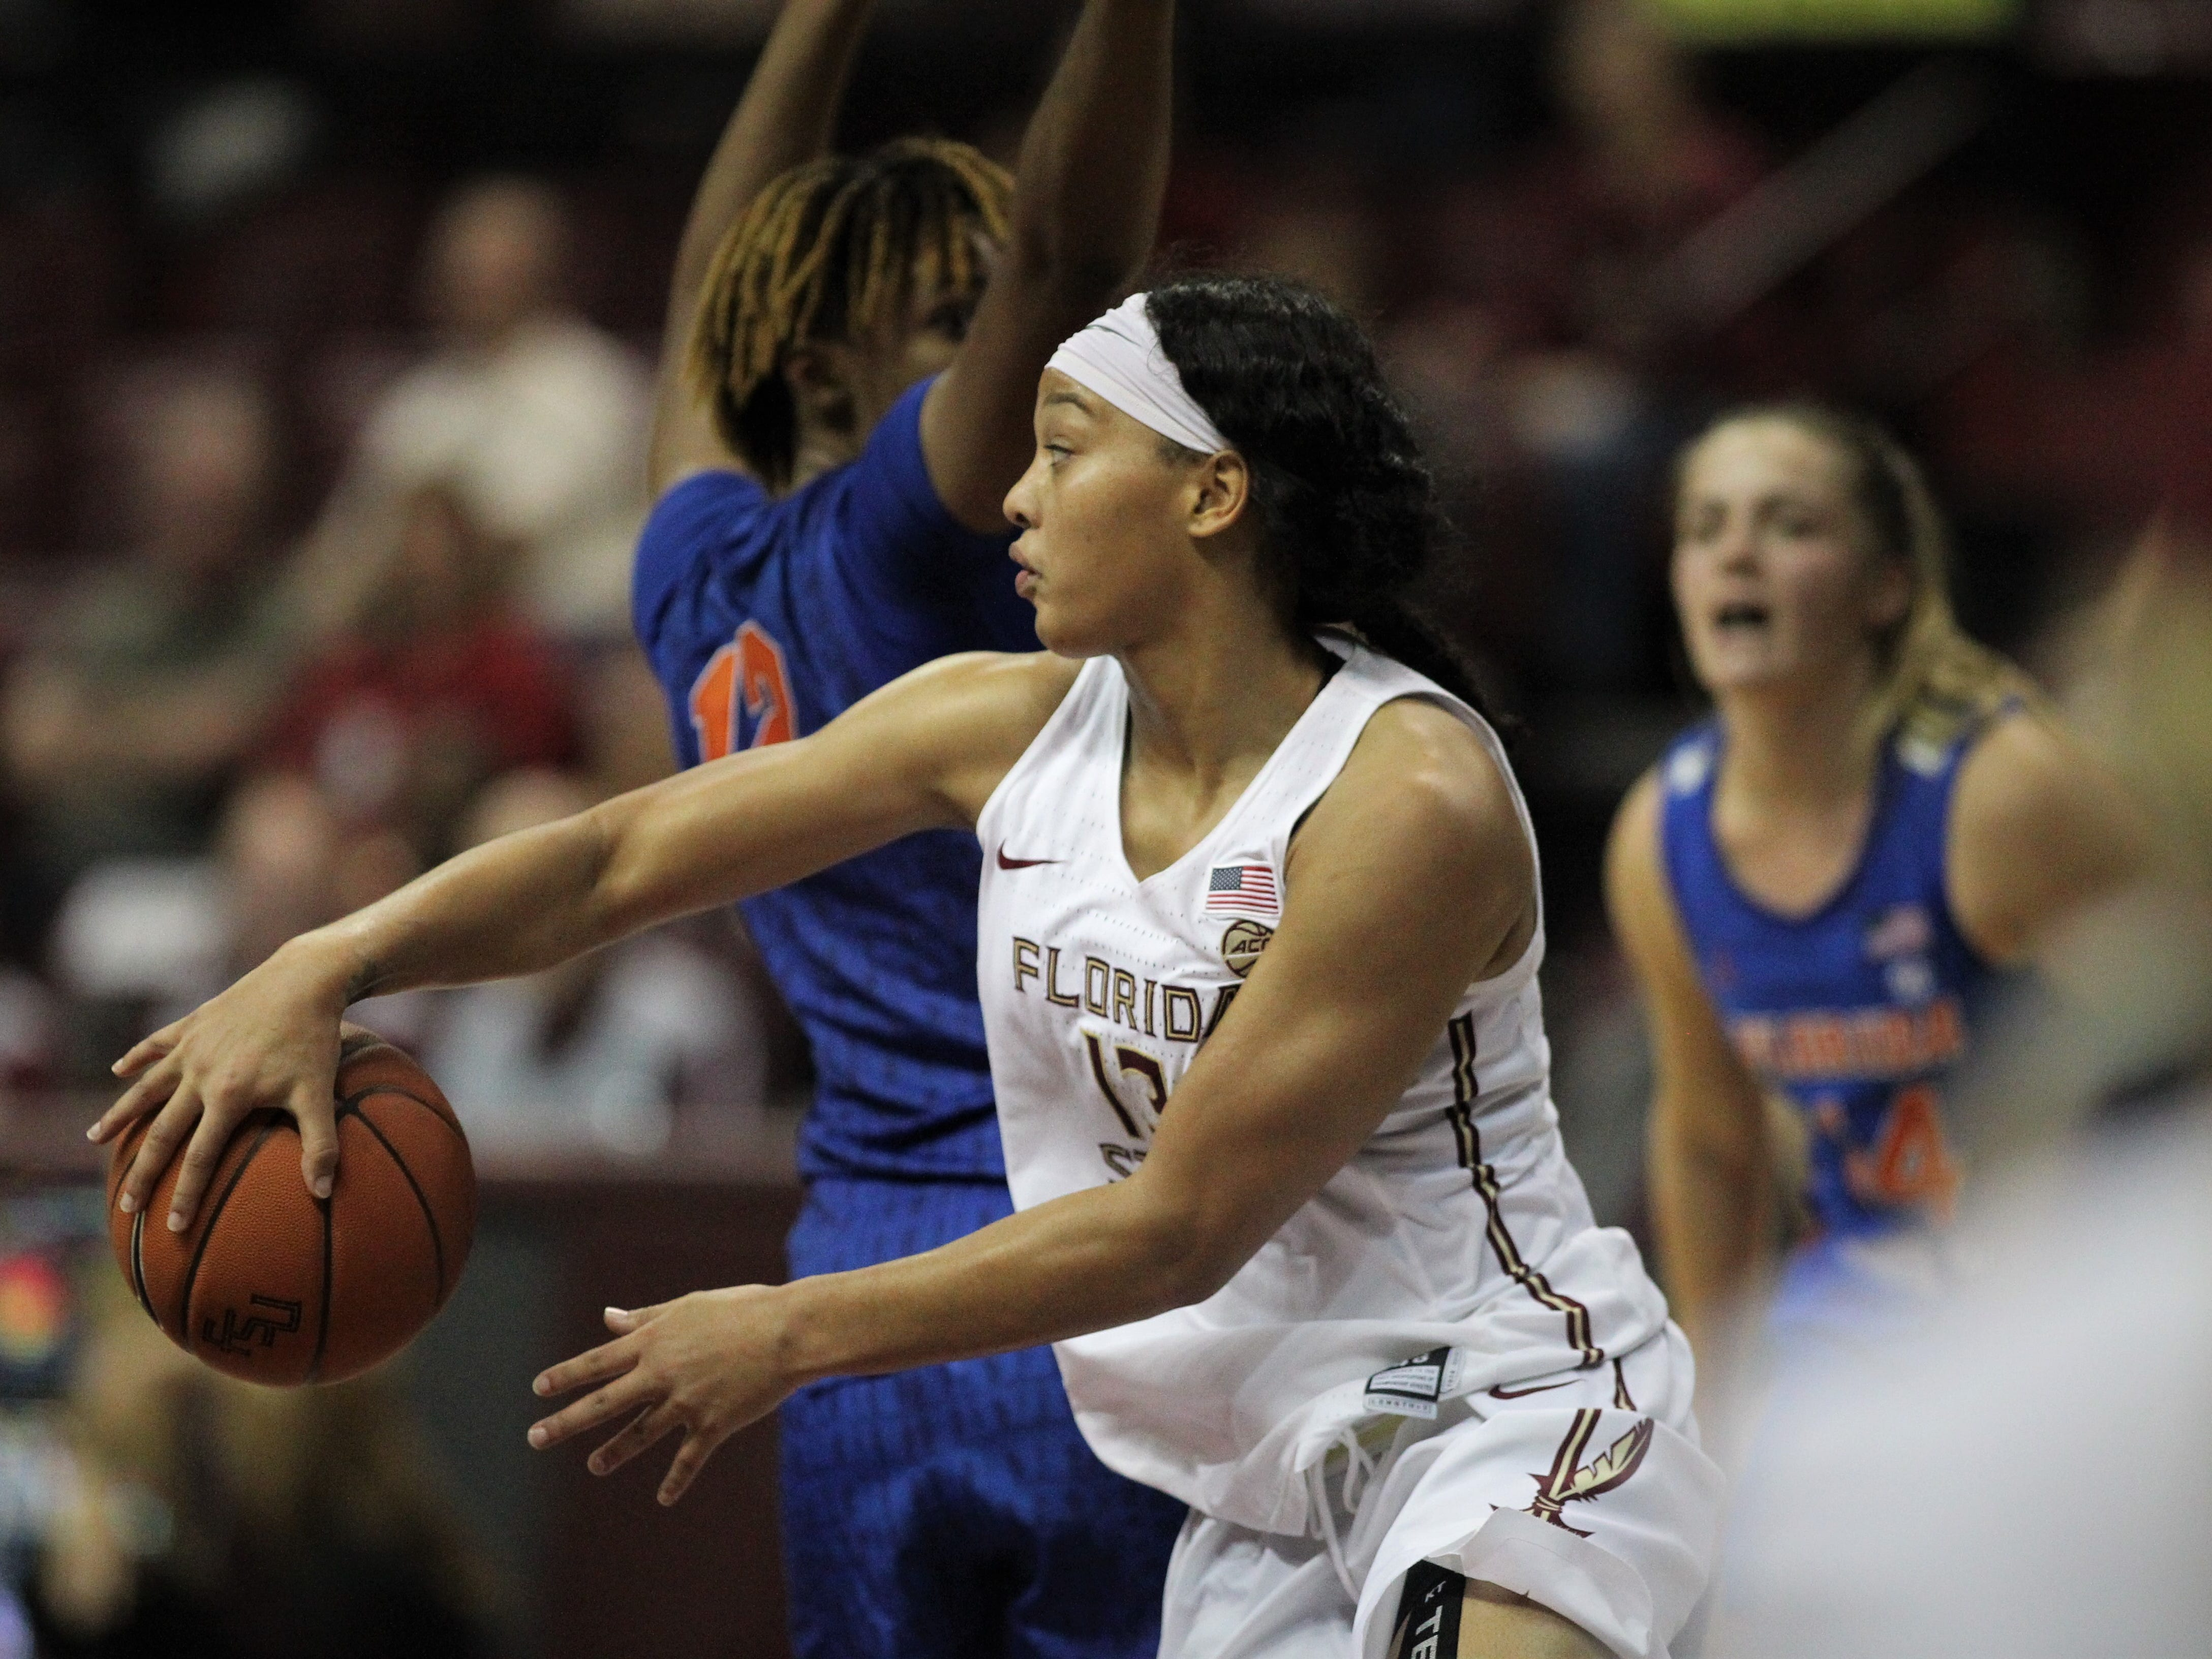 Florida State's Nausia Woolfolk throws a wrap-around pass during the second half of the Seminoles' game against Florida at the Tucker Civic Center on Nov. 11, 2018.